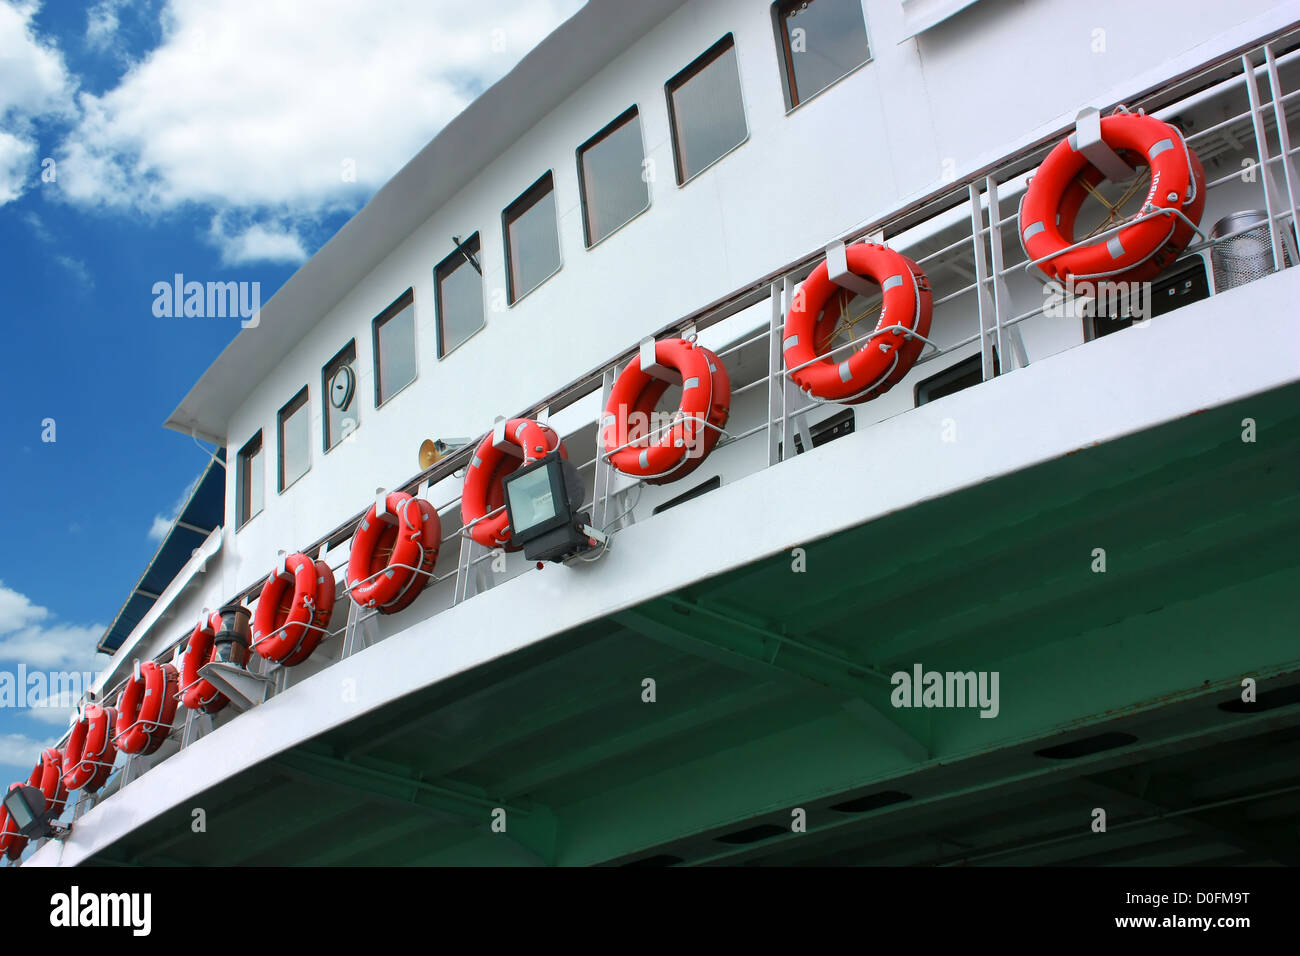 Ordered life rings on ferryboat - Stock Image